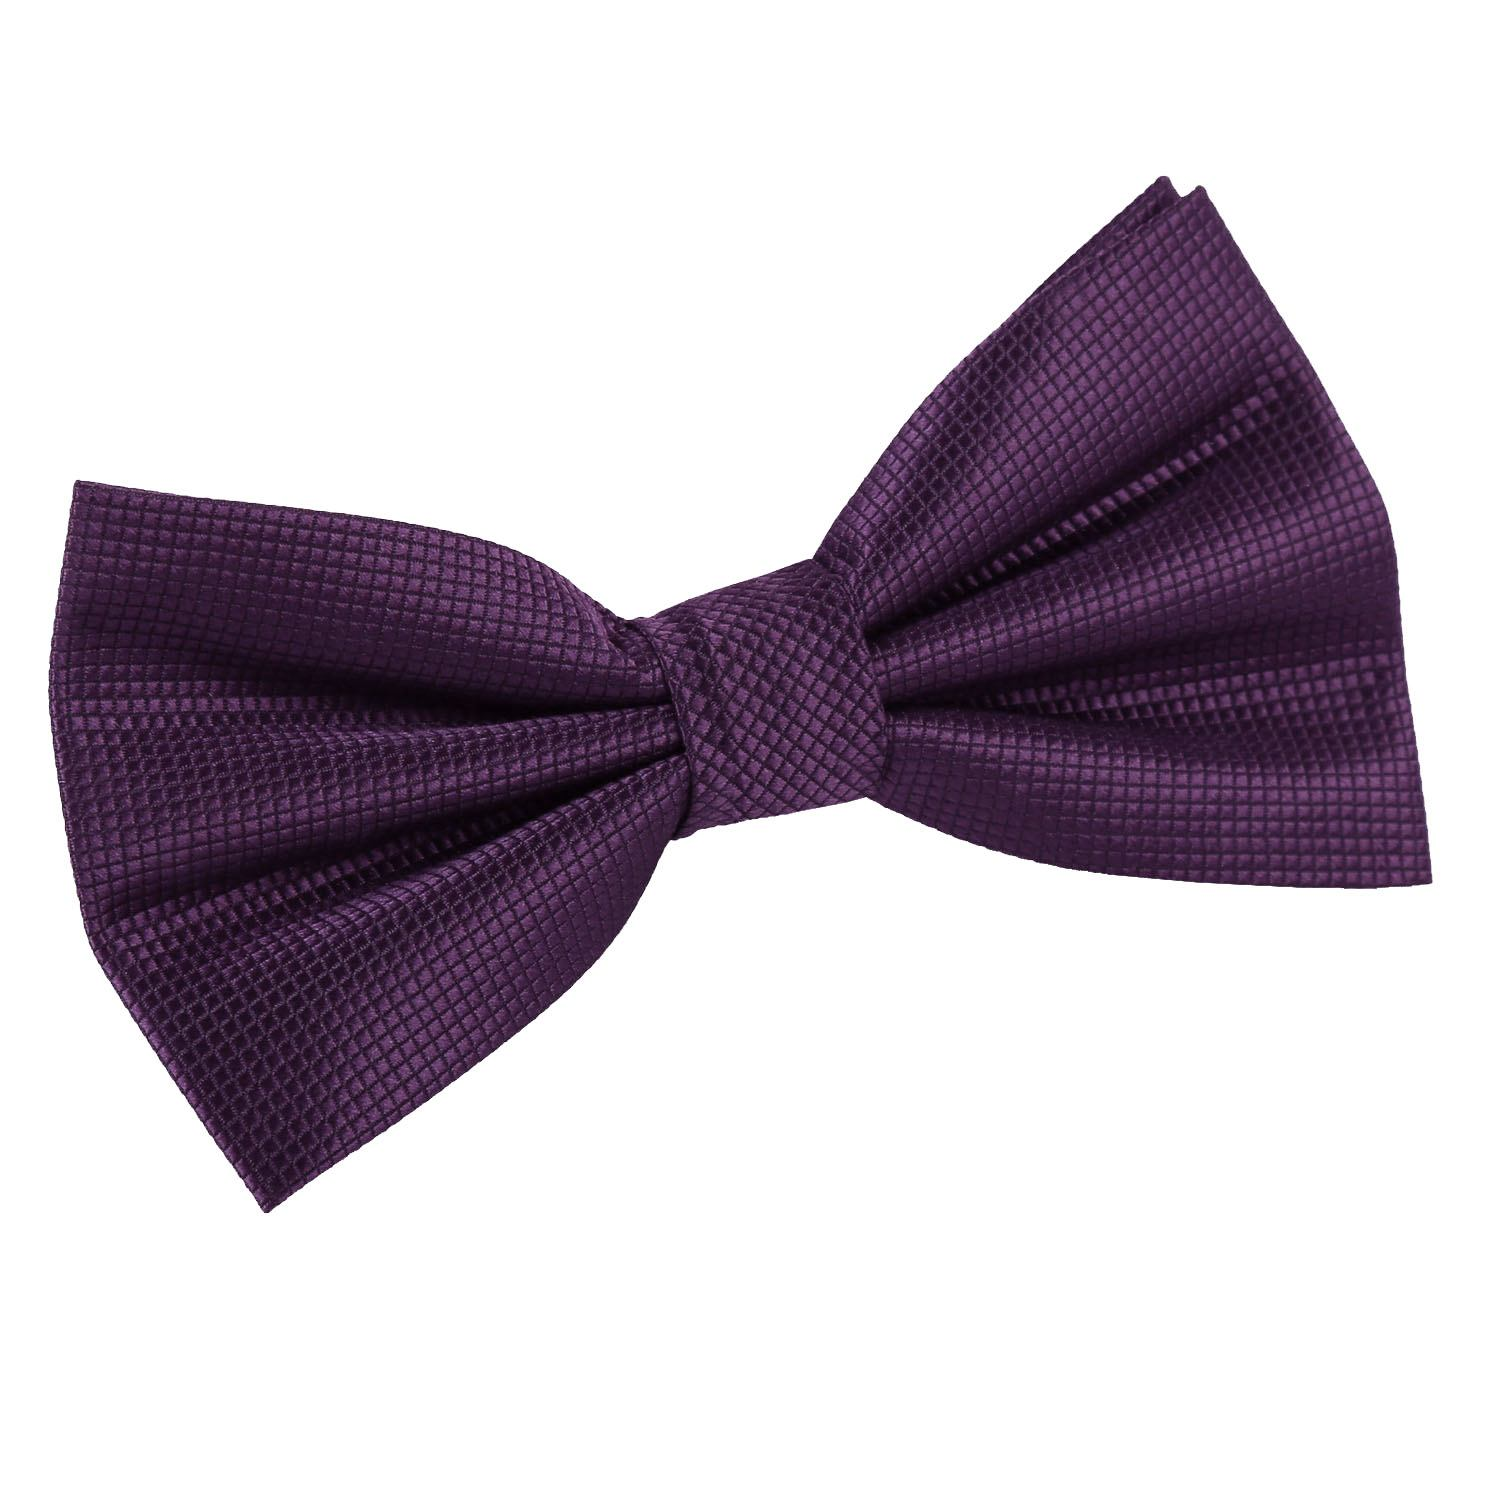 Enjoy free shipping and easy returns every day at Kohl's. Find great deals on Mens Purple Ties at Kohl's today!